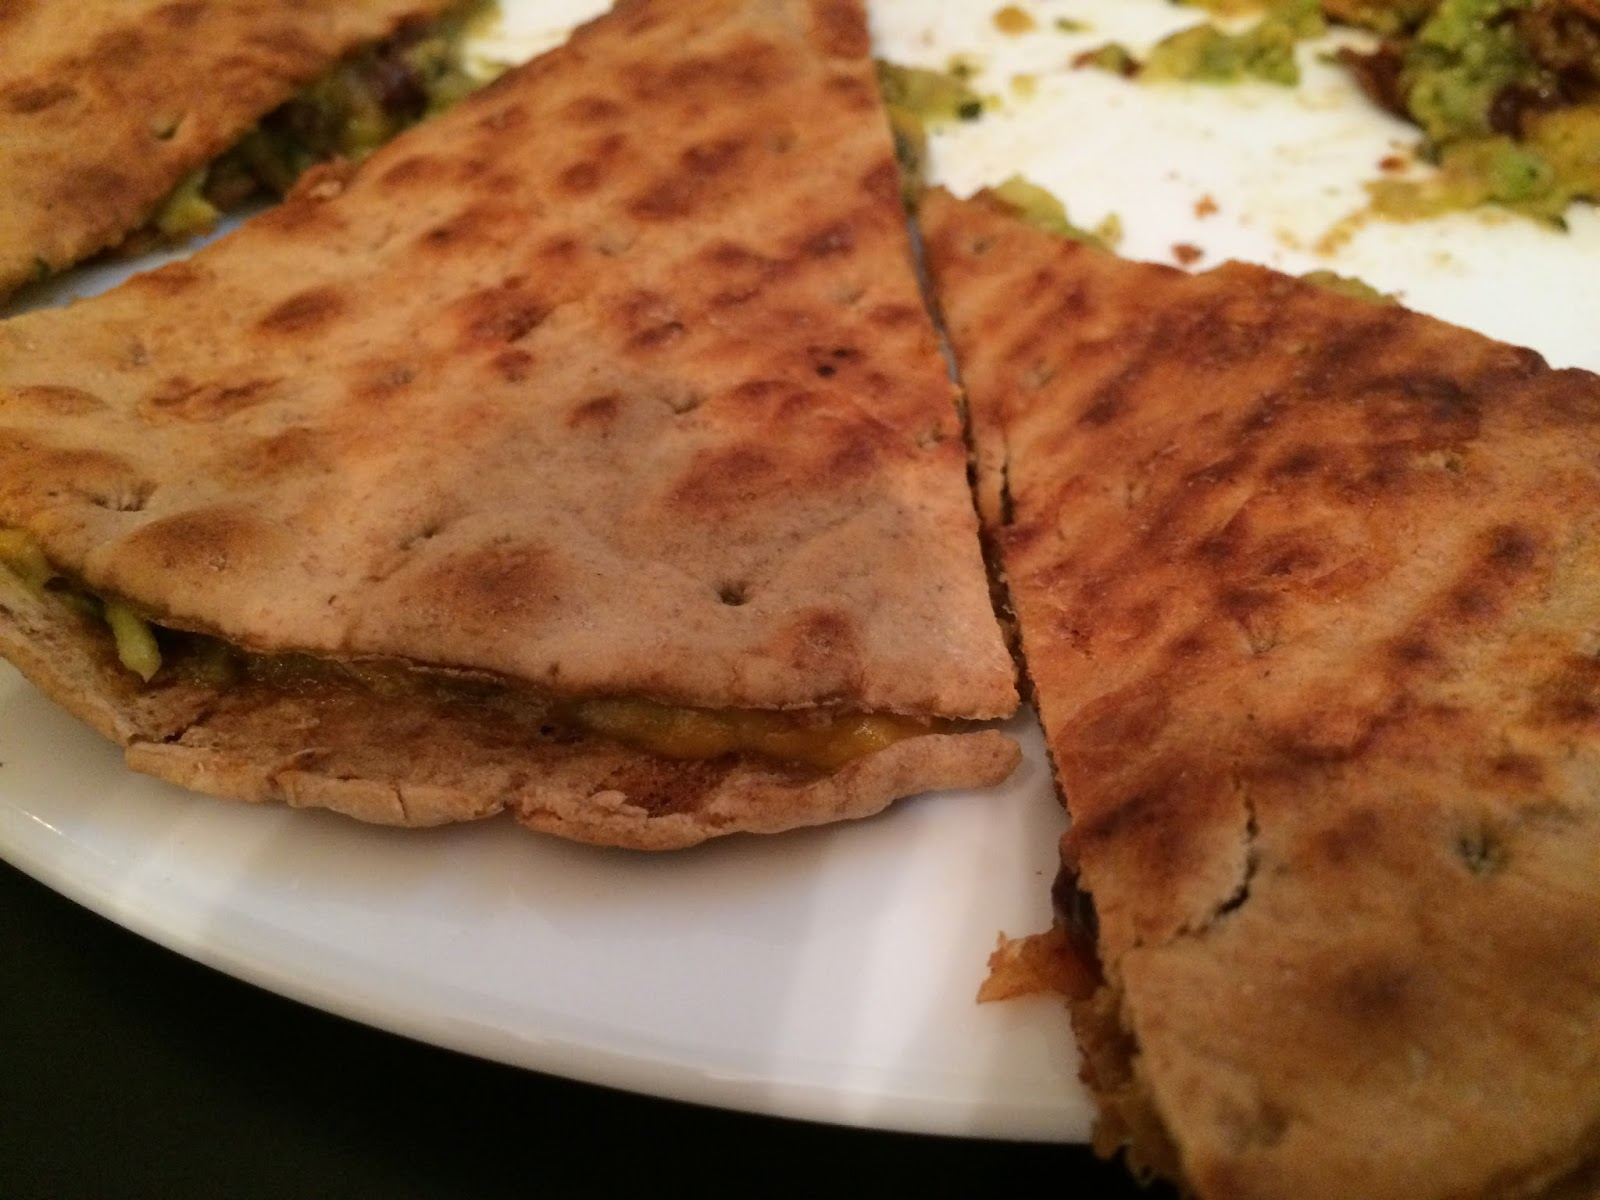 ... With Avocado and Chipotle Black Bean Quesadillas and | Life in Reviews